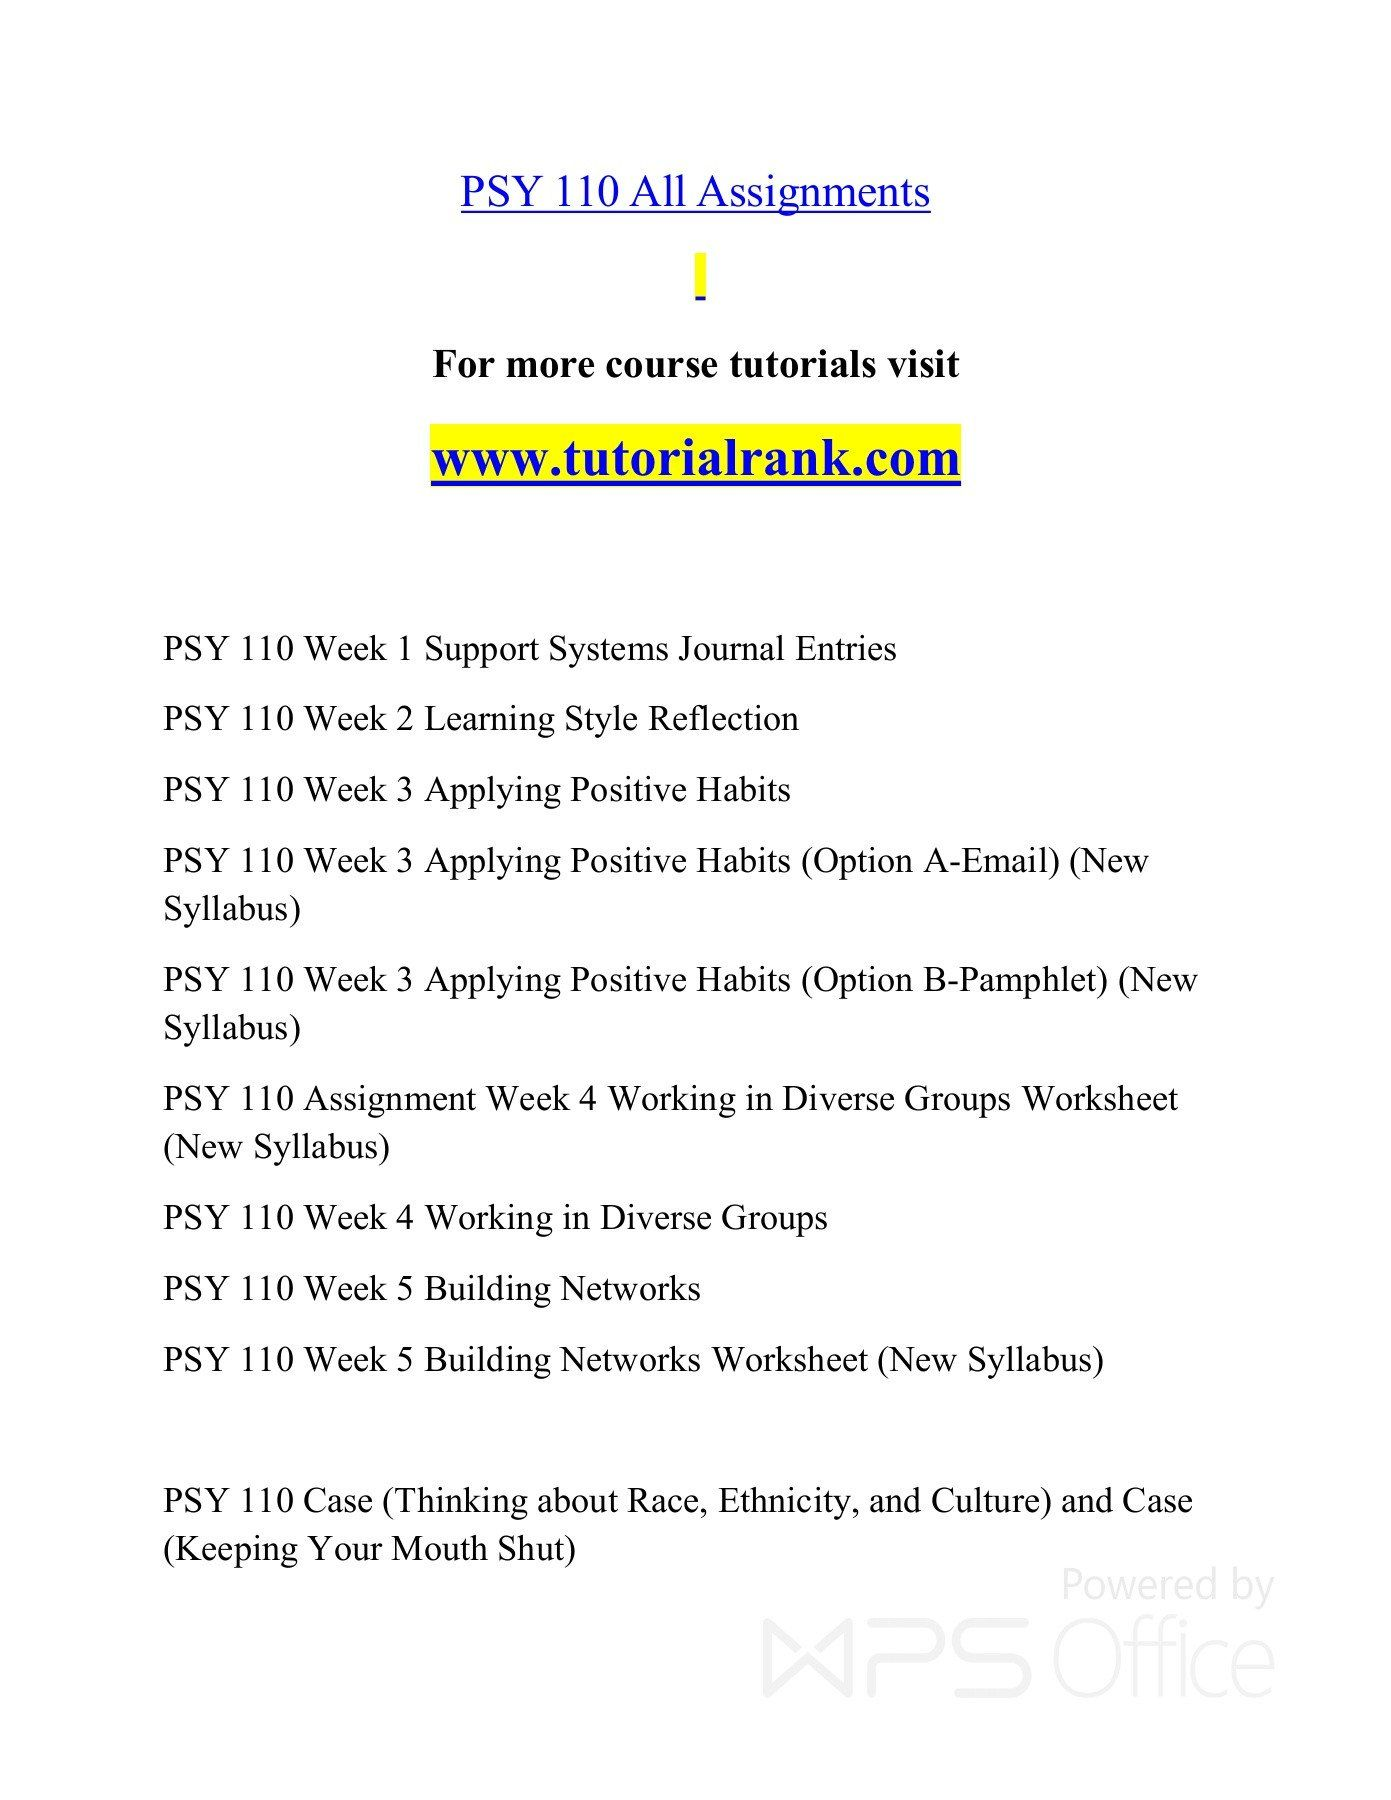 Networks Worksheet Answer Key Psy 110 Uop Teaching